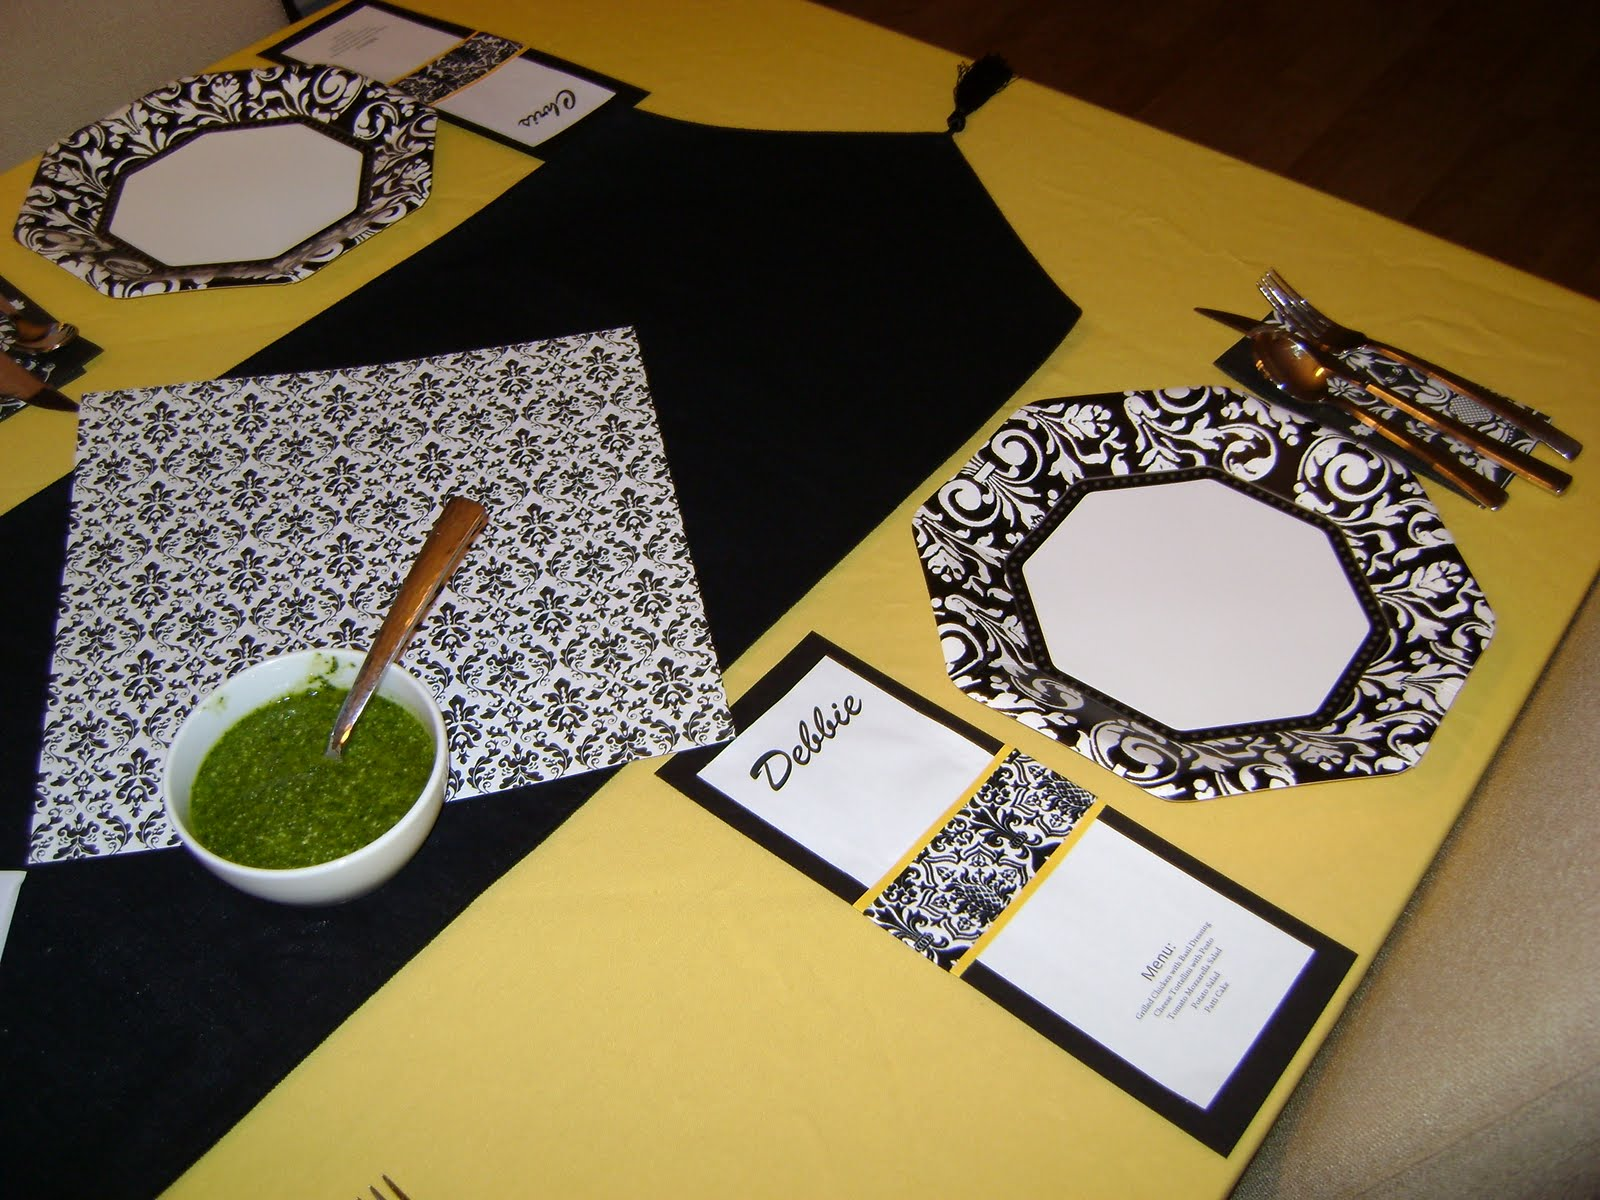 I found damask paper plates and napkins at the party store. I used more of the scrapbook paper to create the menu cards/place markers as well as the trim ... & Our Hobby House: Black White u0026 Yellow Damask Dinner Party